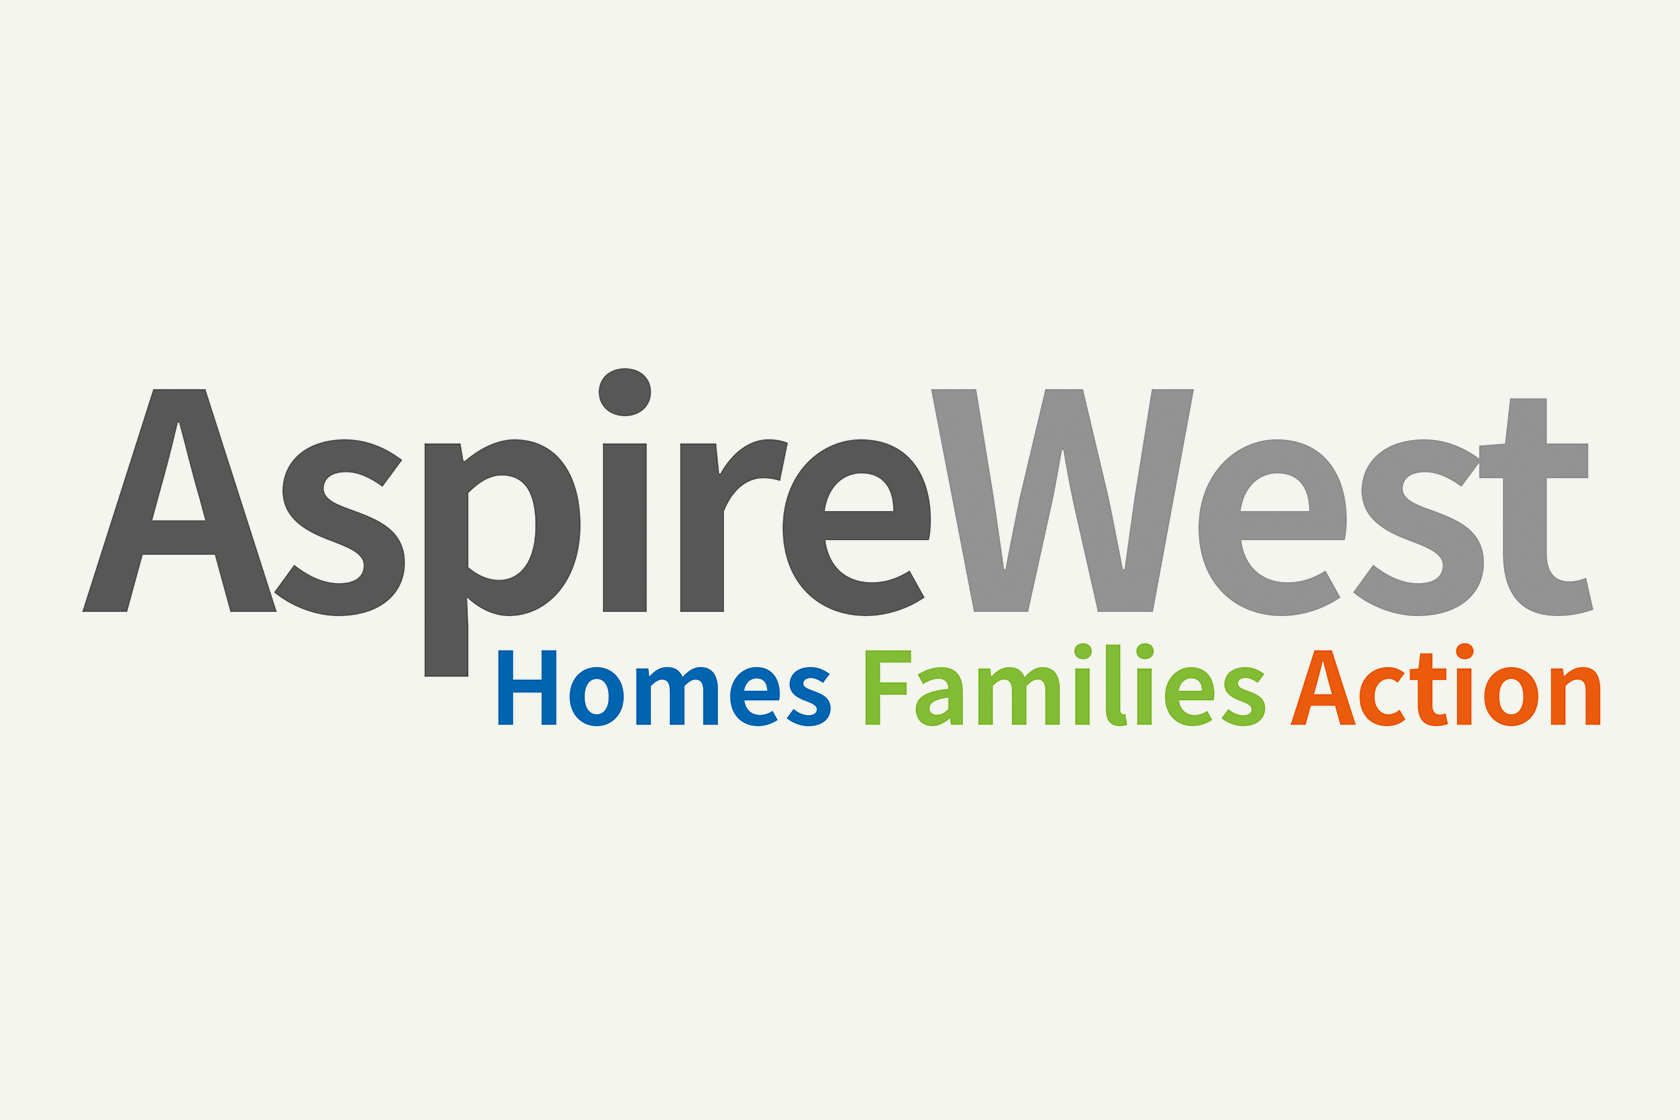 AspireWest Corporate ID, communications strategy and branding by Hillier Consulting